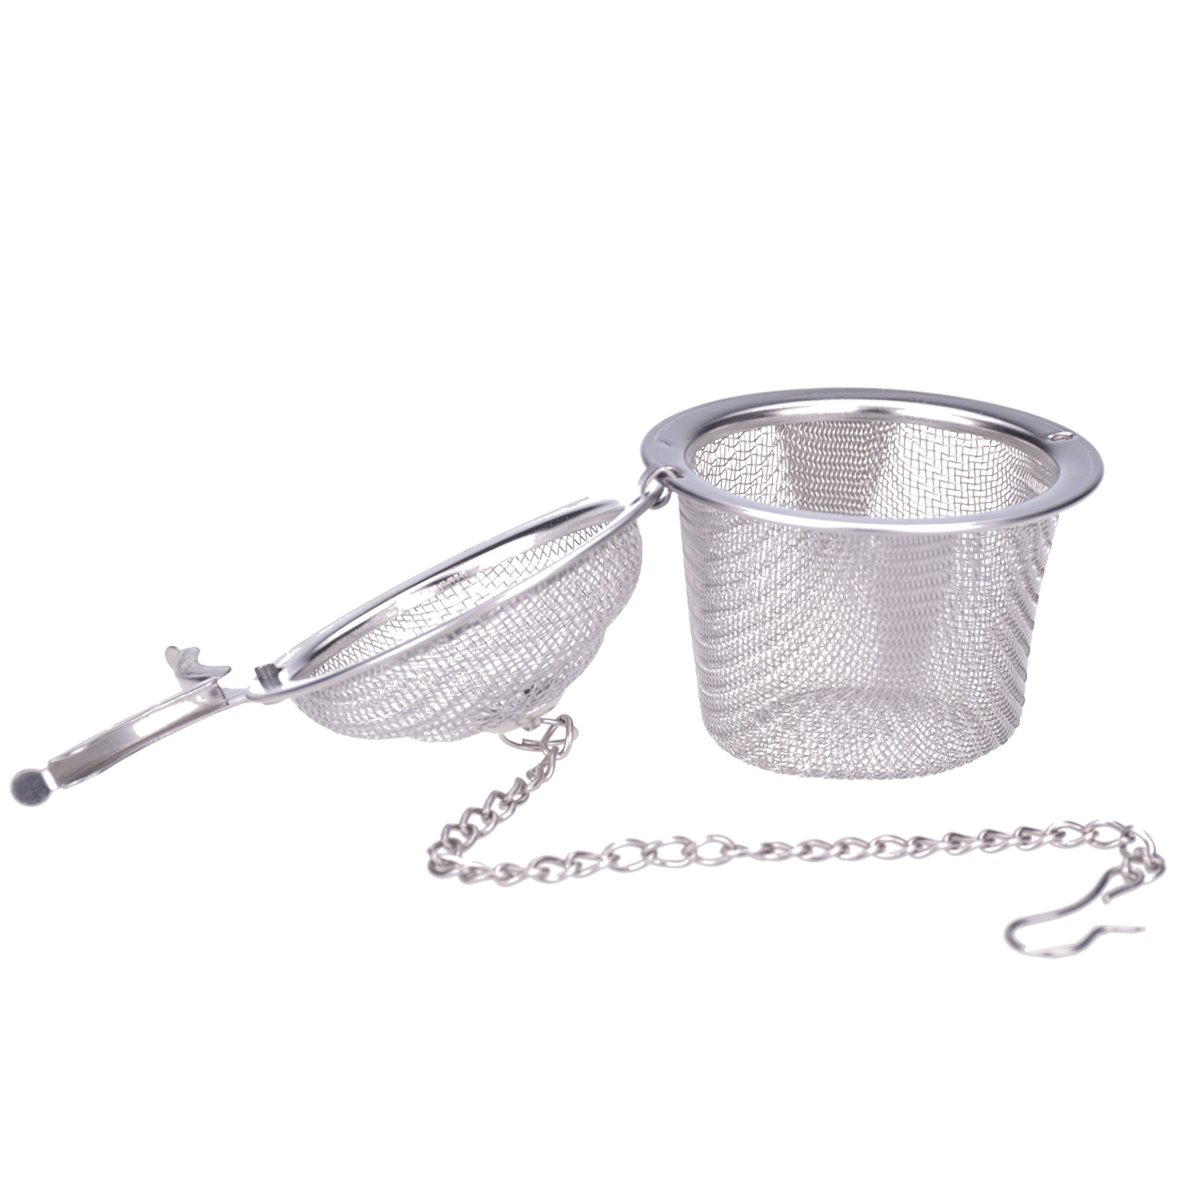 Ilyever Stainless Steel Mesh Tea Bag Strainer filter Infuser for Loose Leaf Grain Tea Cups, Mugs, and Teapots by ilyever (Image #2)